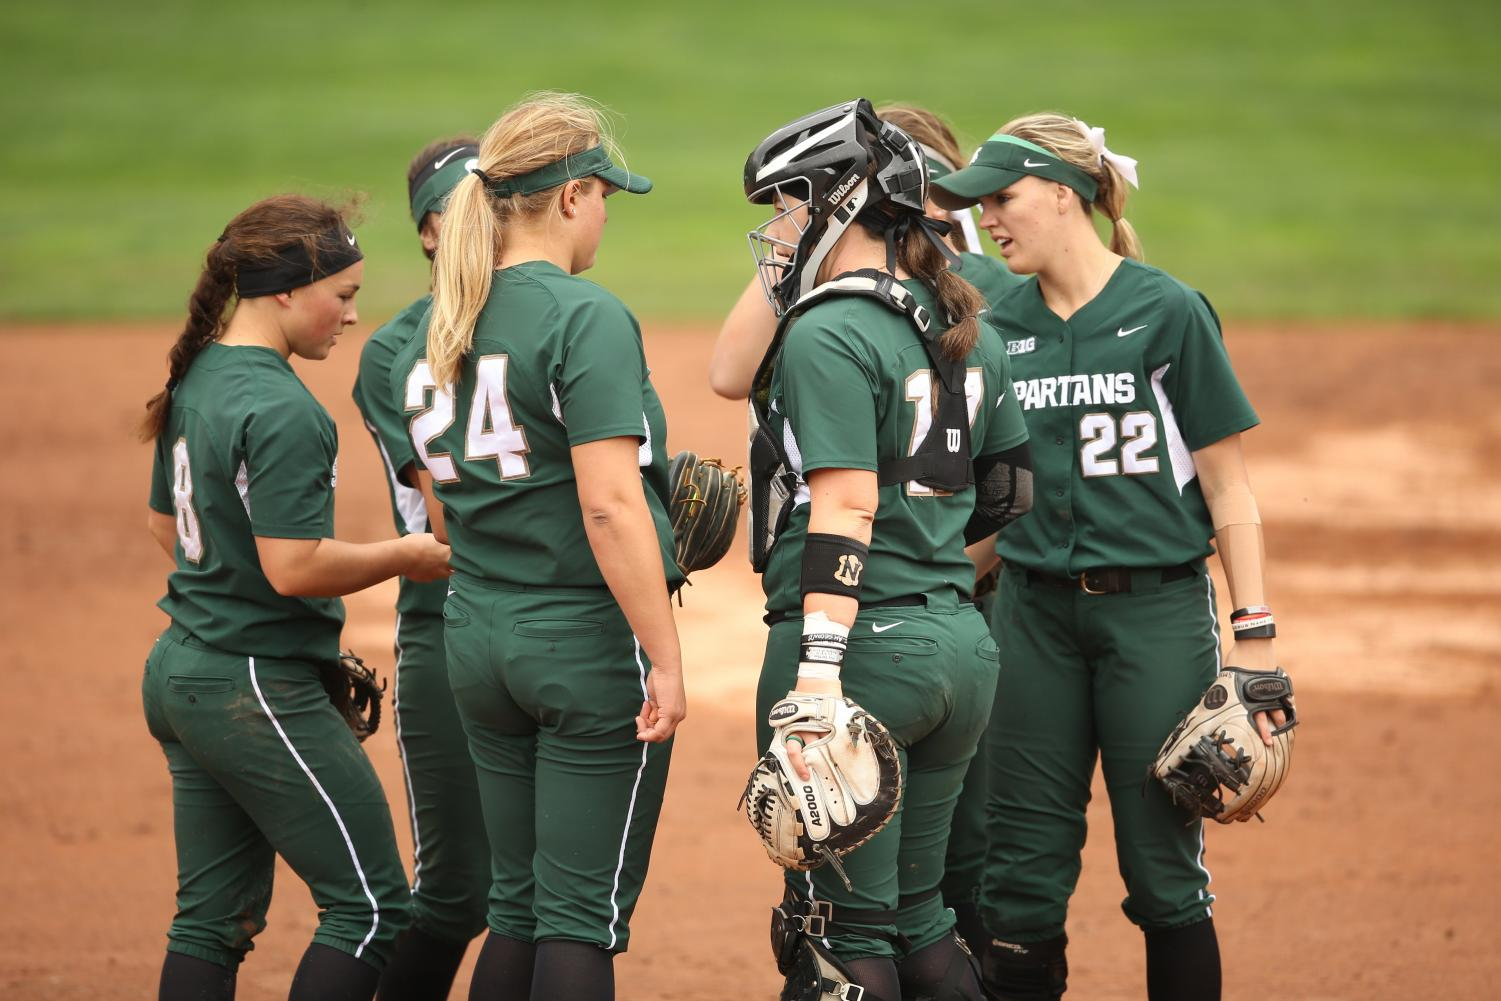 Photo: MSU Athletic Communications